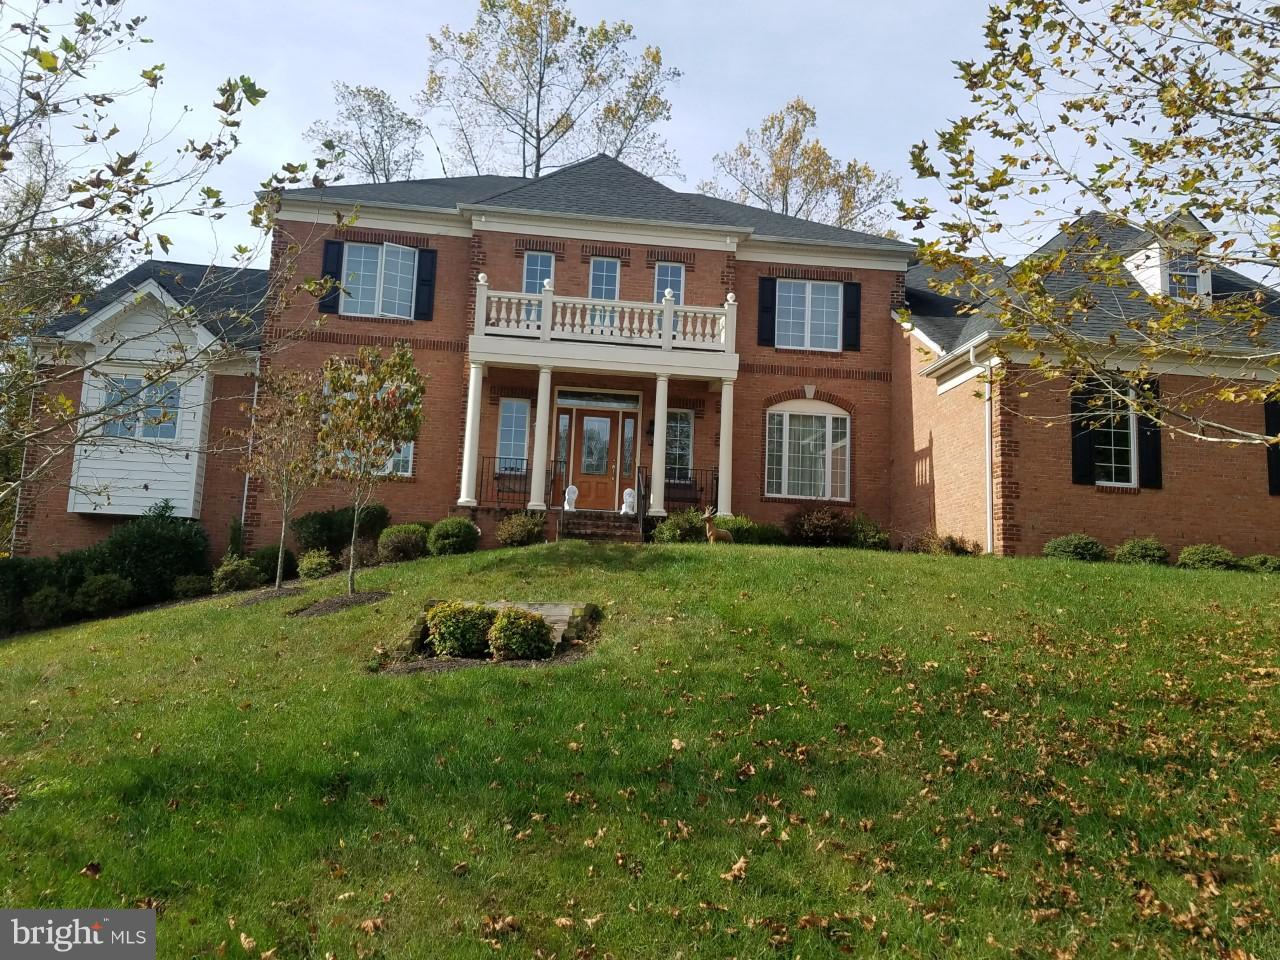 8305 CONDY COURT, CLINTON, MD 20735